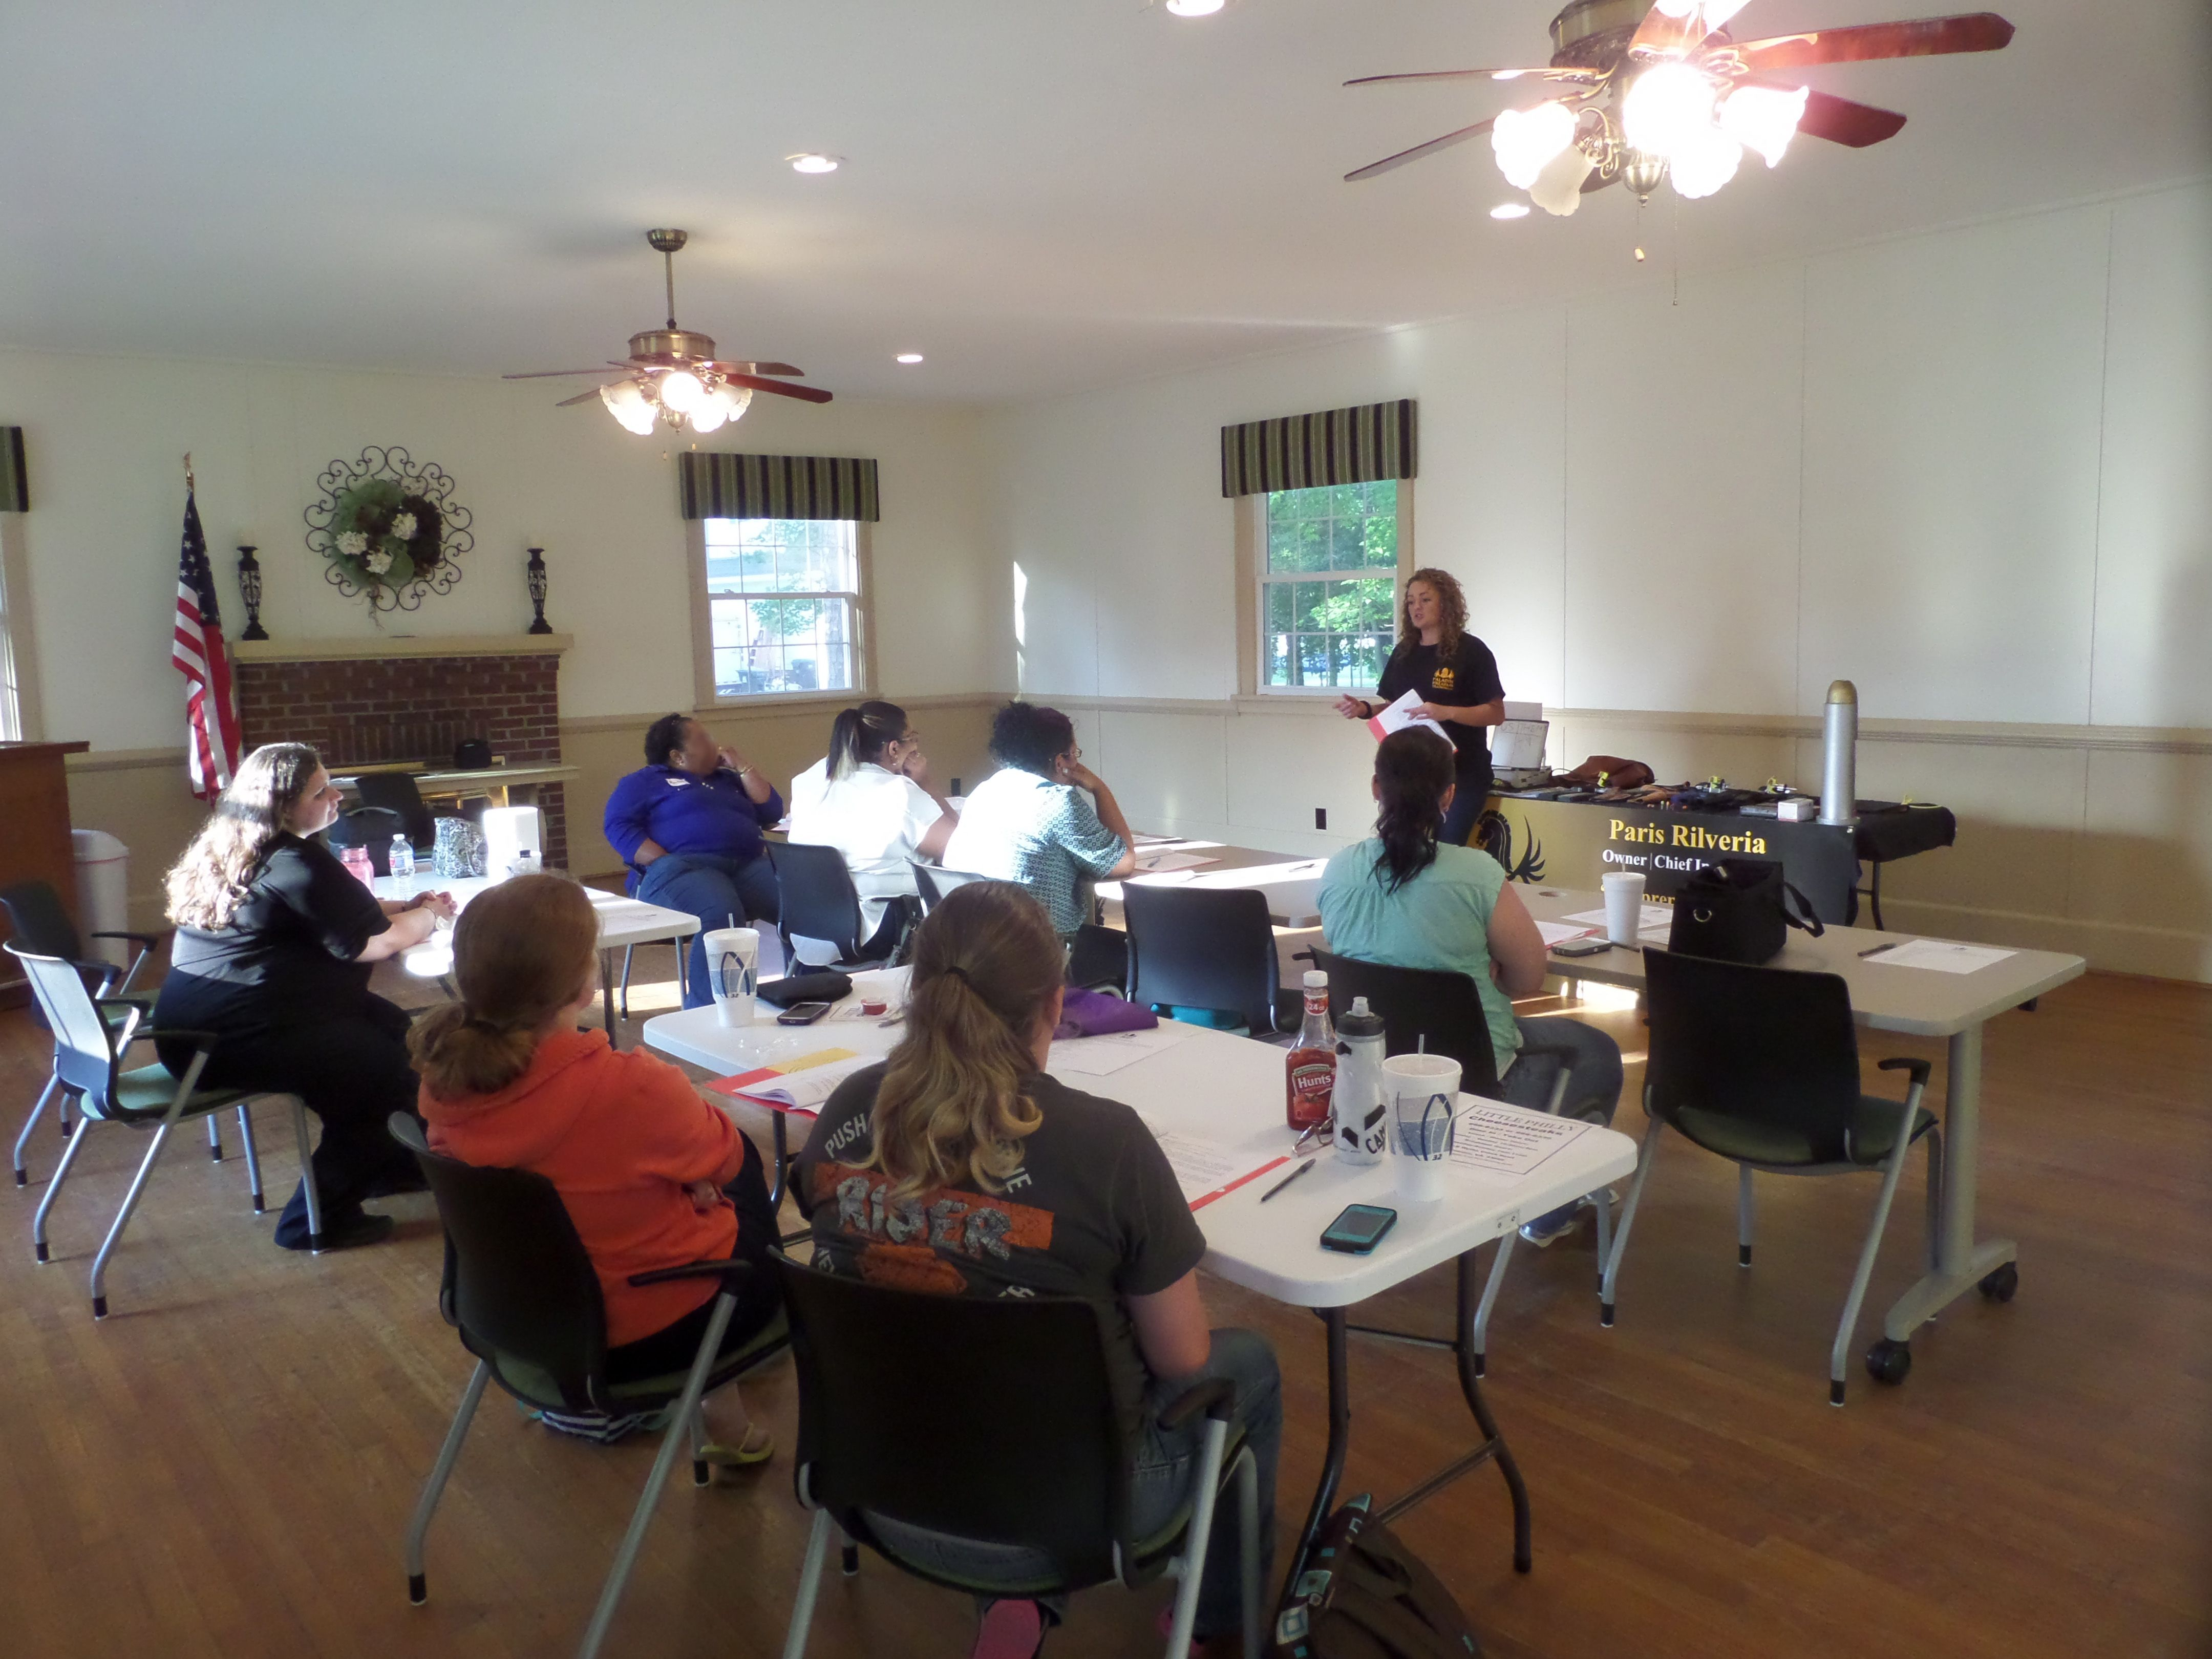 Assistant Instructor Pugh discussing the topic of Children